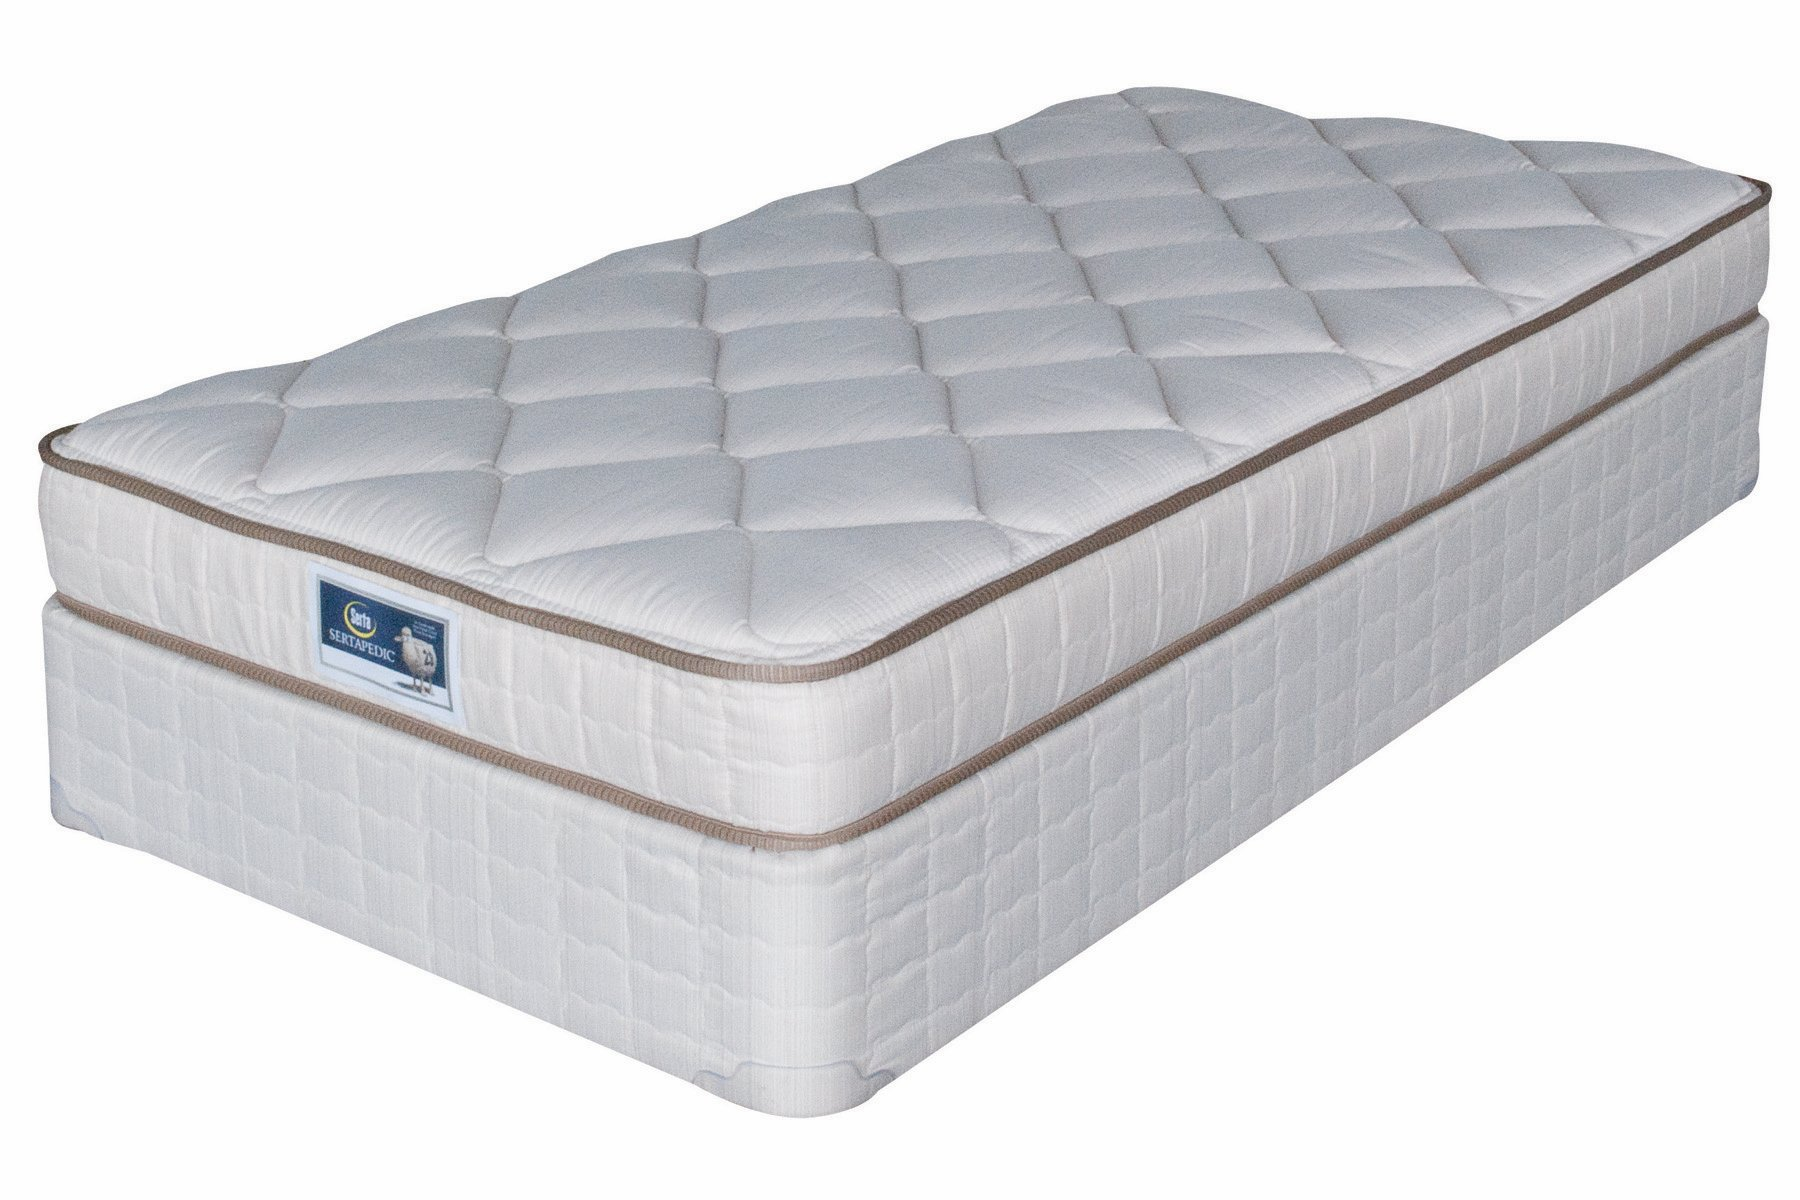 Sertapedic Crosspoint Plush Mattress Reviews GoodBed